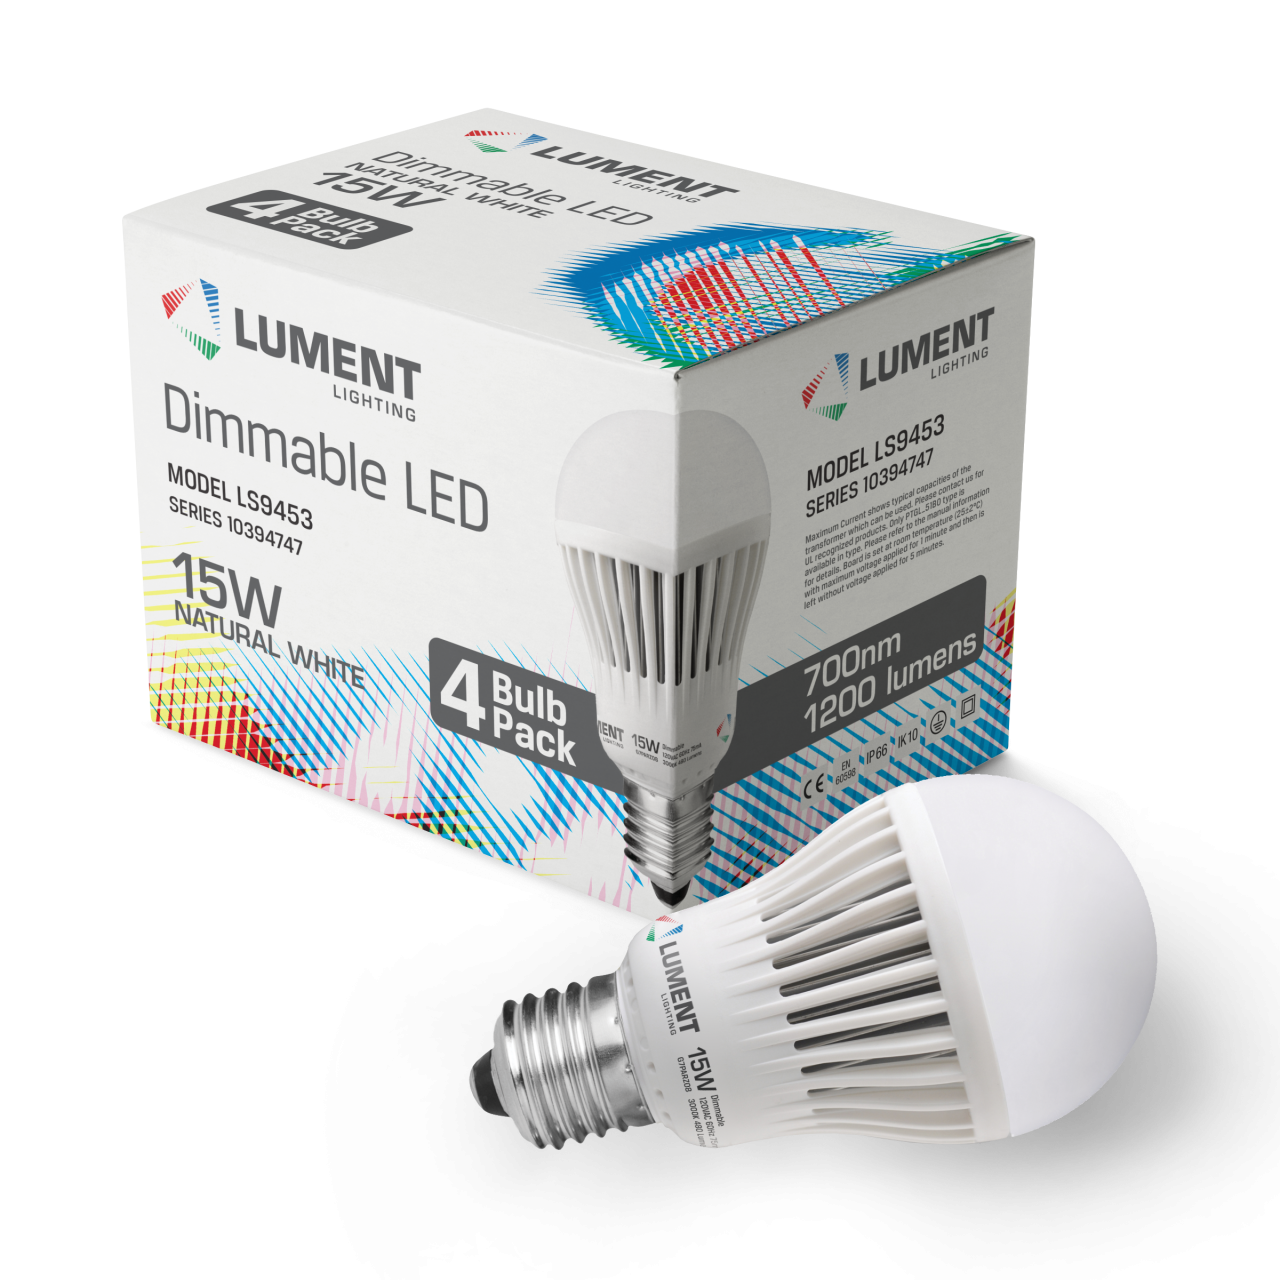 Image of Lument Lighting sample products